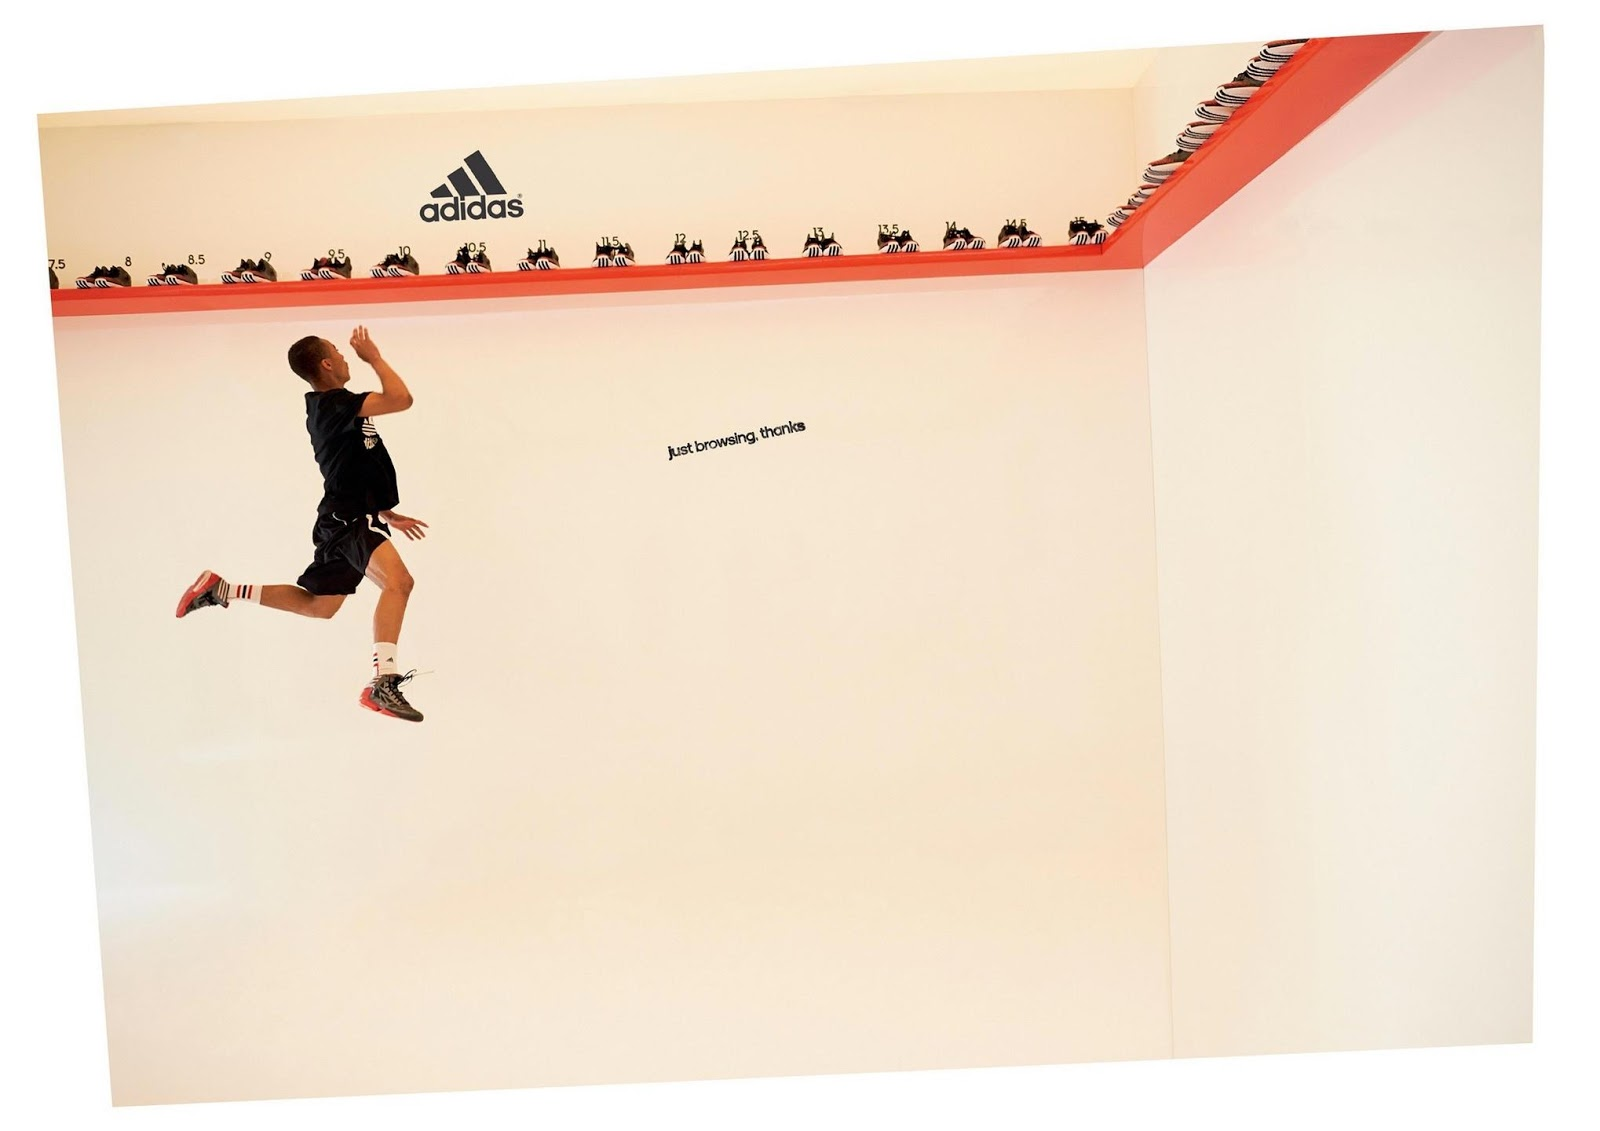 'Just Browsing, Thanks' Adidas ad with Derrick Rose.